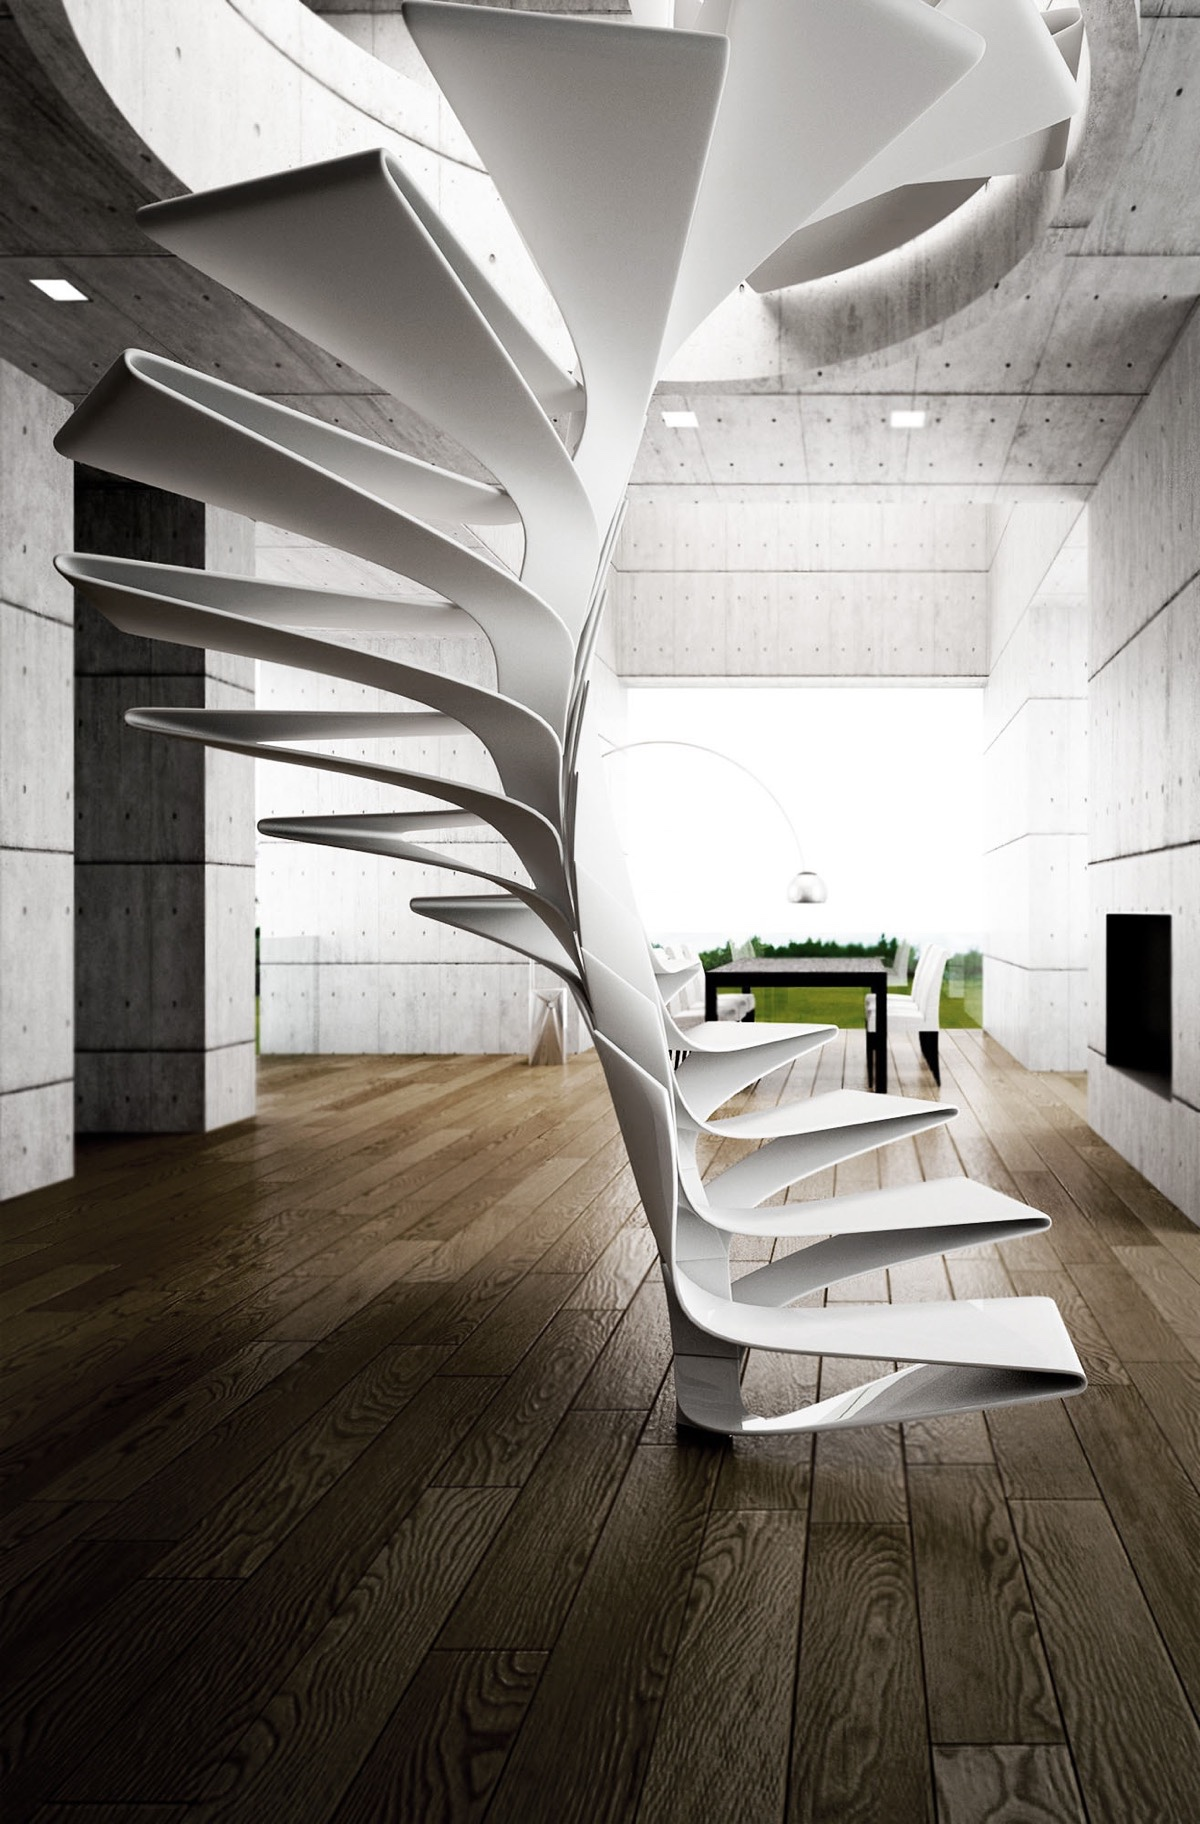 Stairway Designs 25 Unique Staircase Designs To Take Center Stage In Your Home